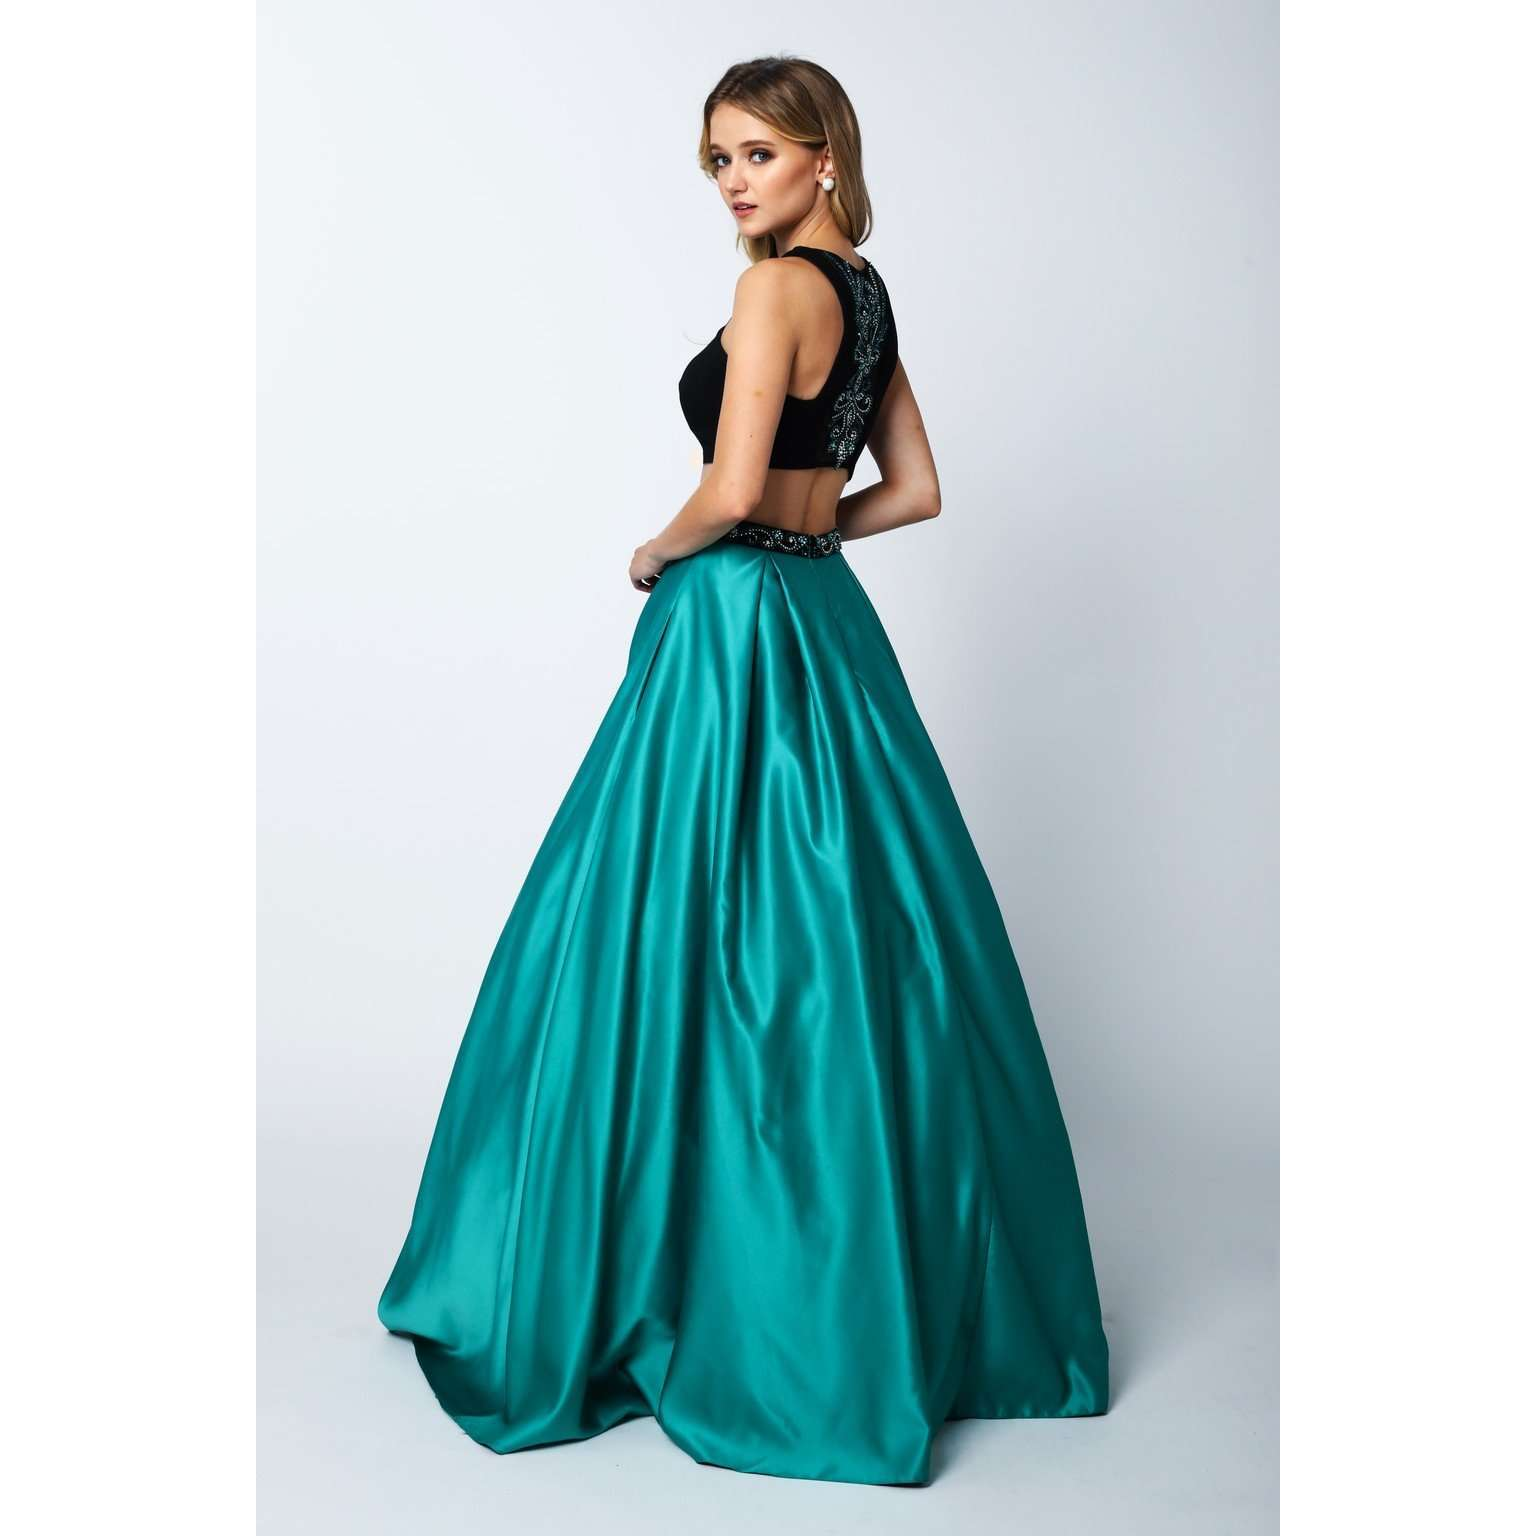 Fitted Jersey Bodice Ball Gown Style Prom Dress 358 - Julietdresses